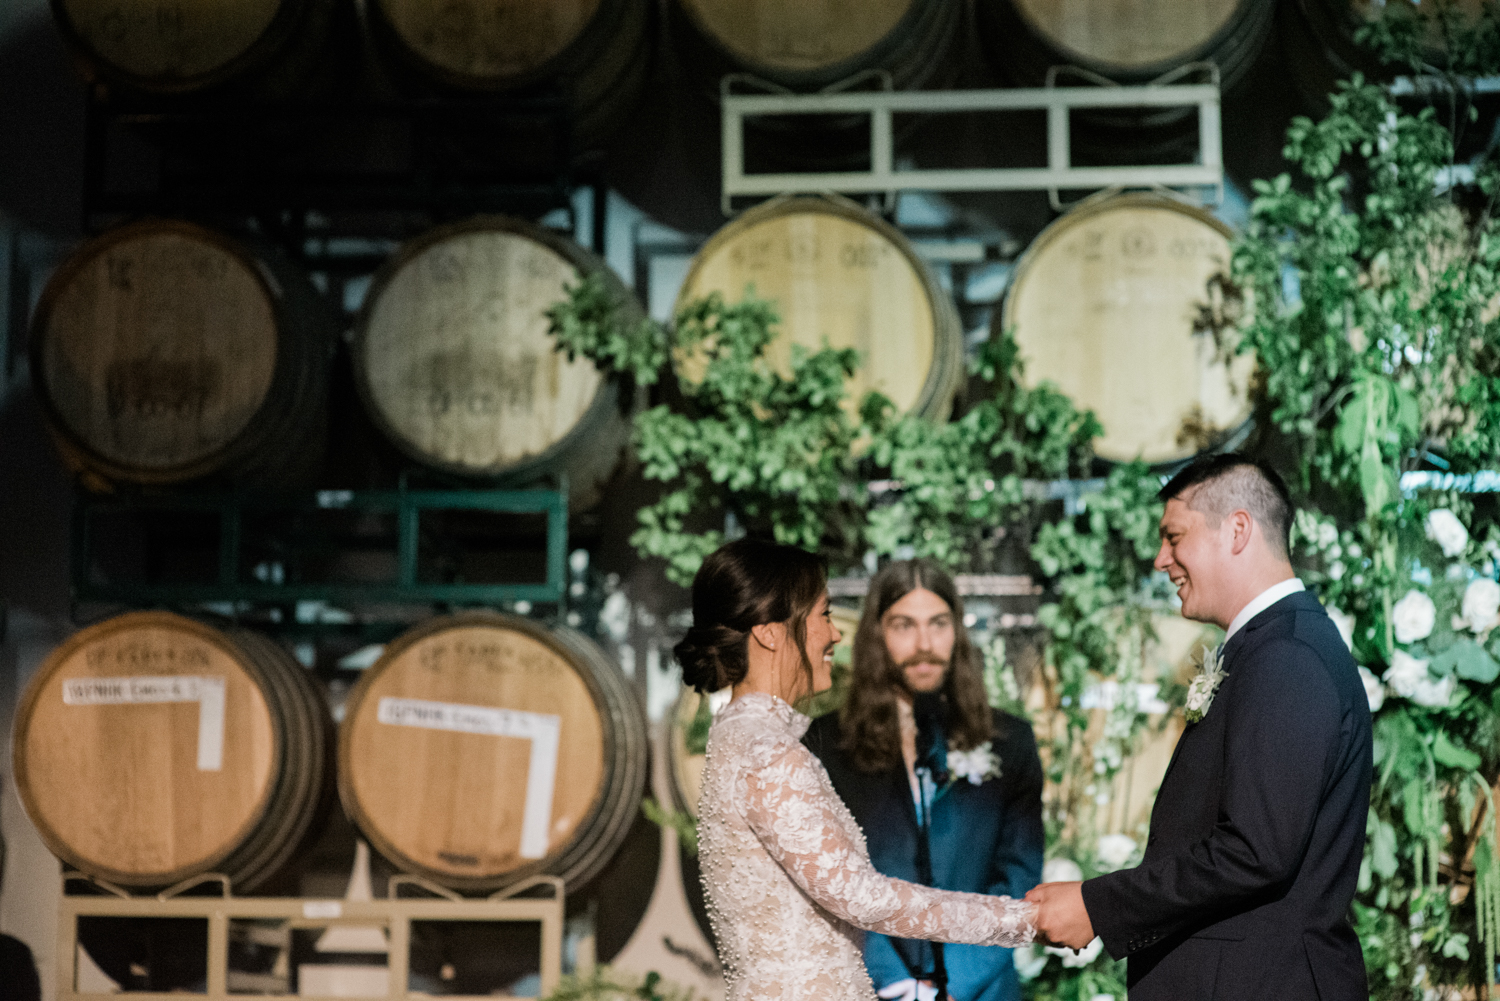 Potrero_Hill_Wine_Works_Wedding_ChristinaRichards_069.jpg